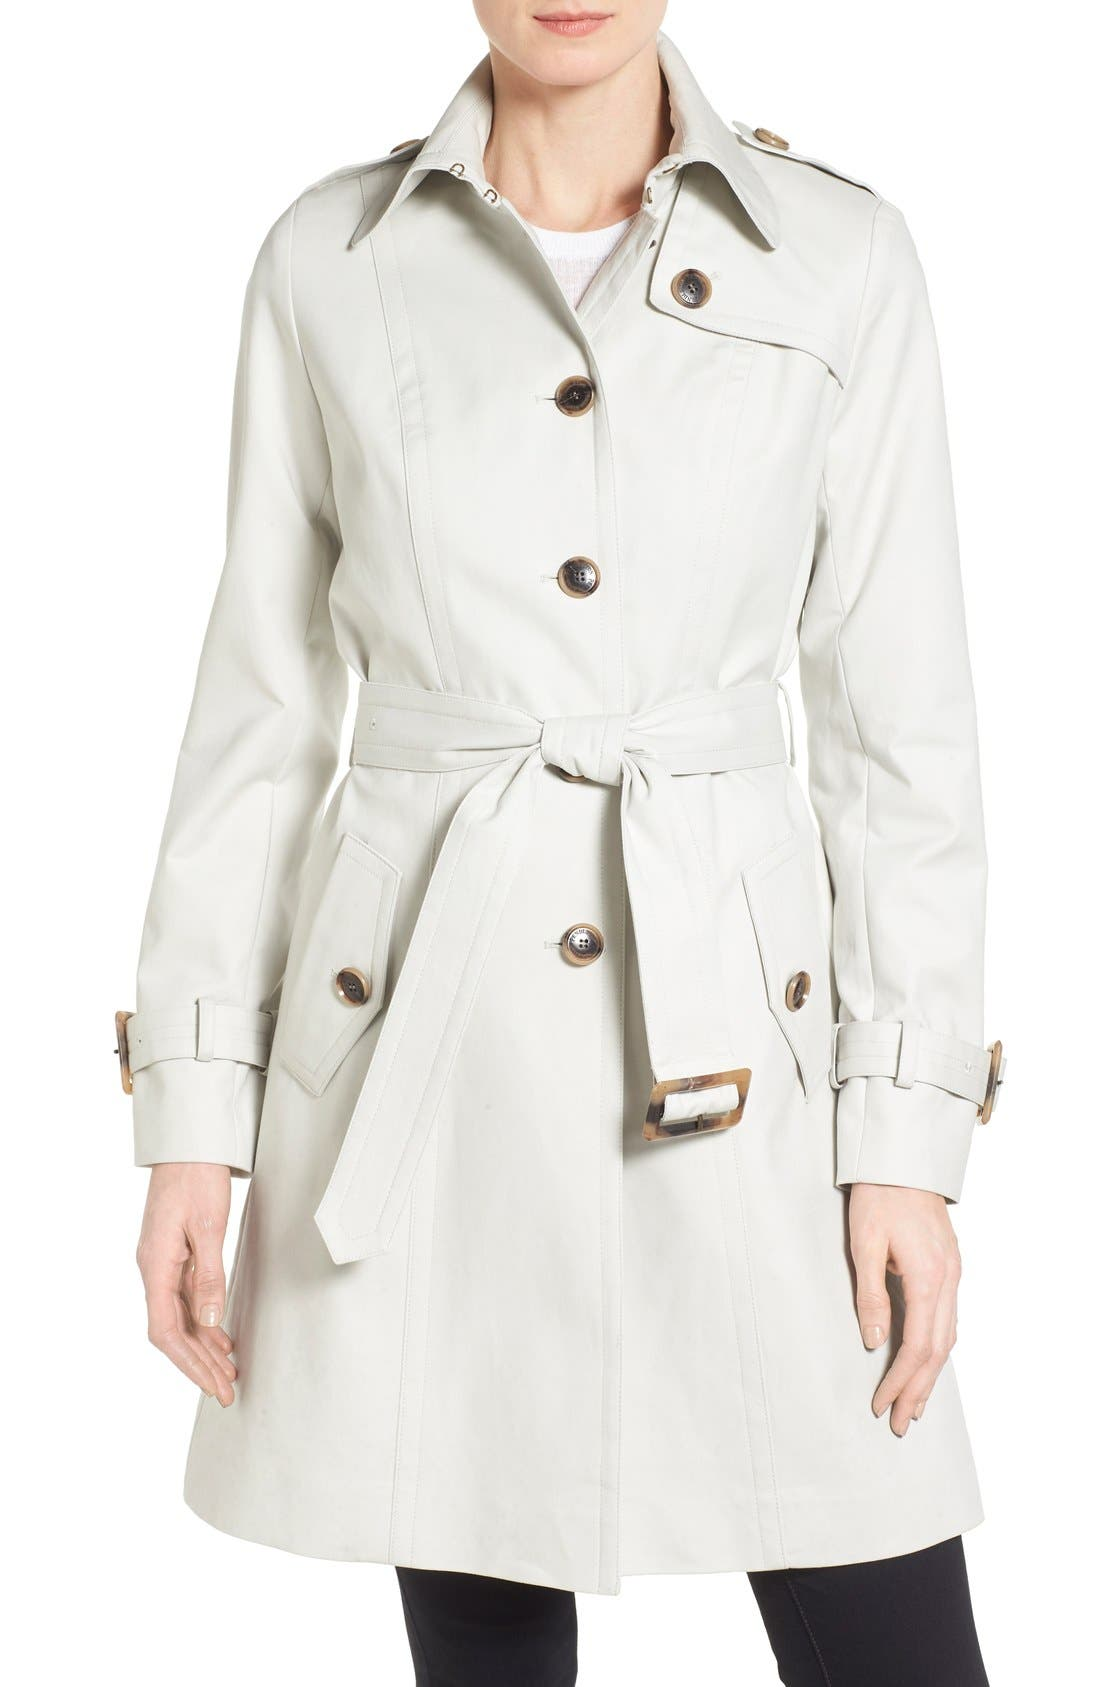 Alternate Image 1 Selected - Pendleton 'Pacific Crest' Single Breasted Trench Coat (Regular & Petite)